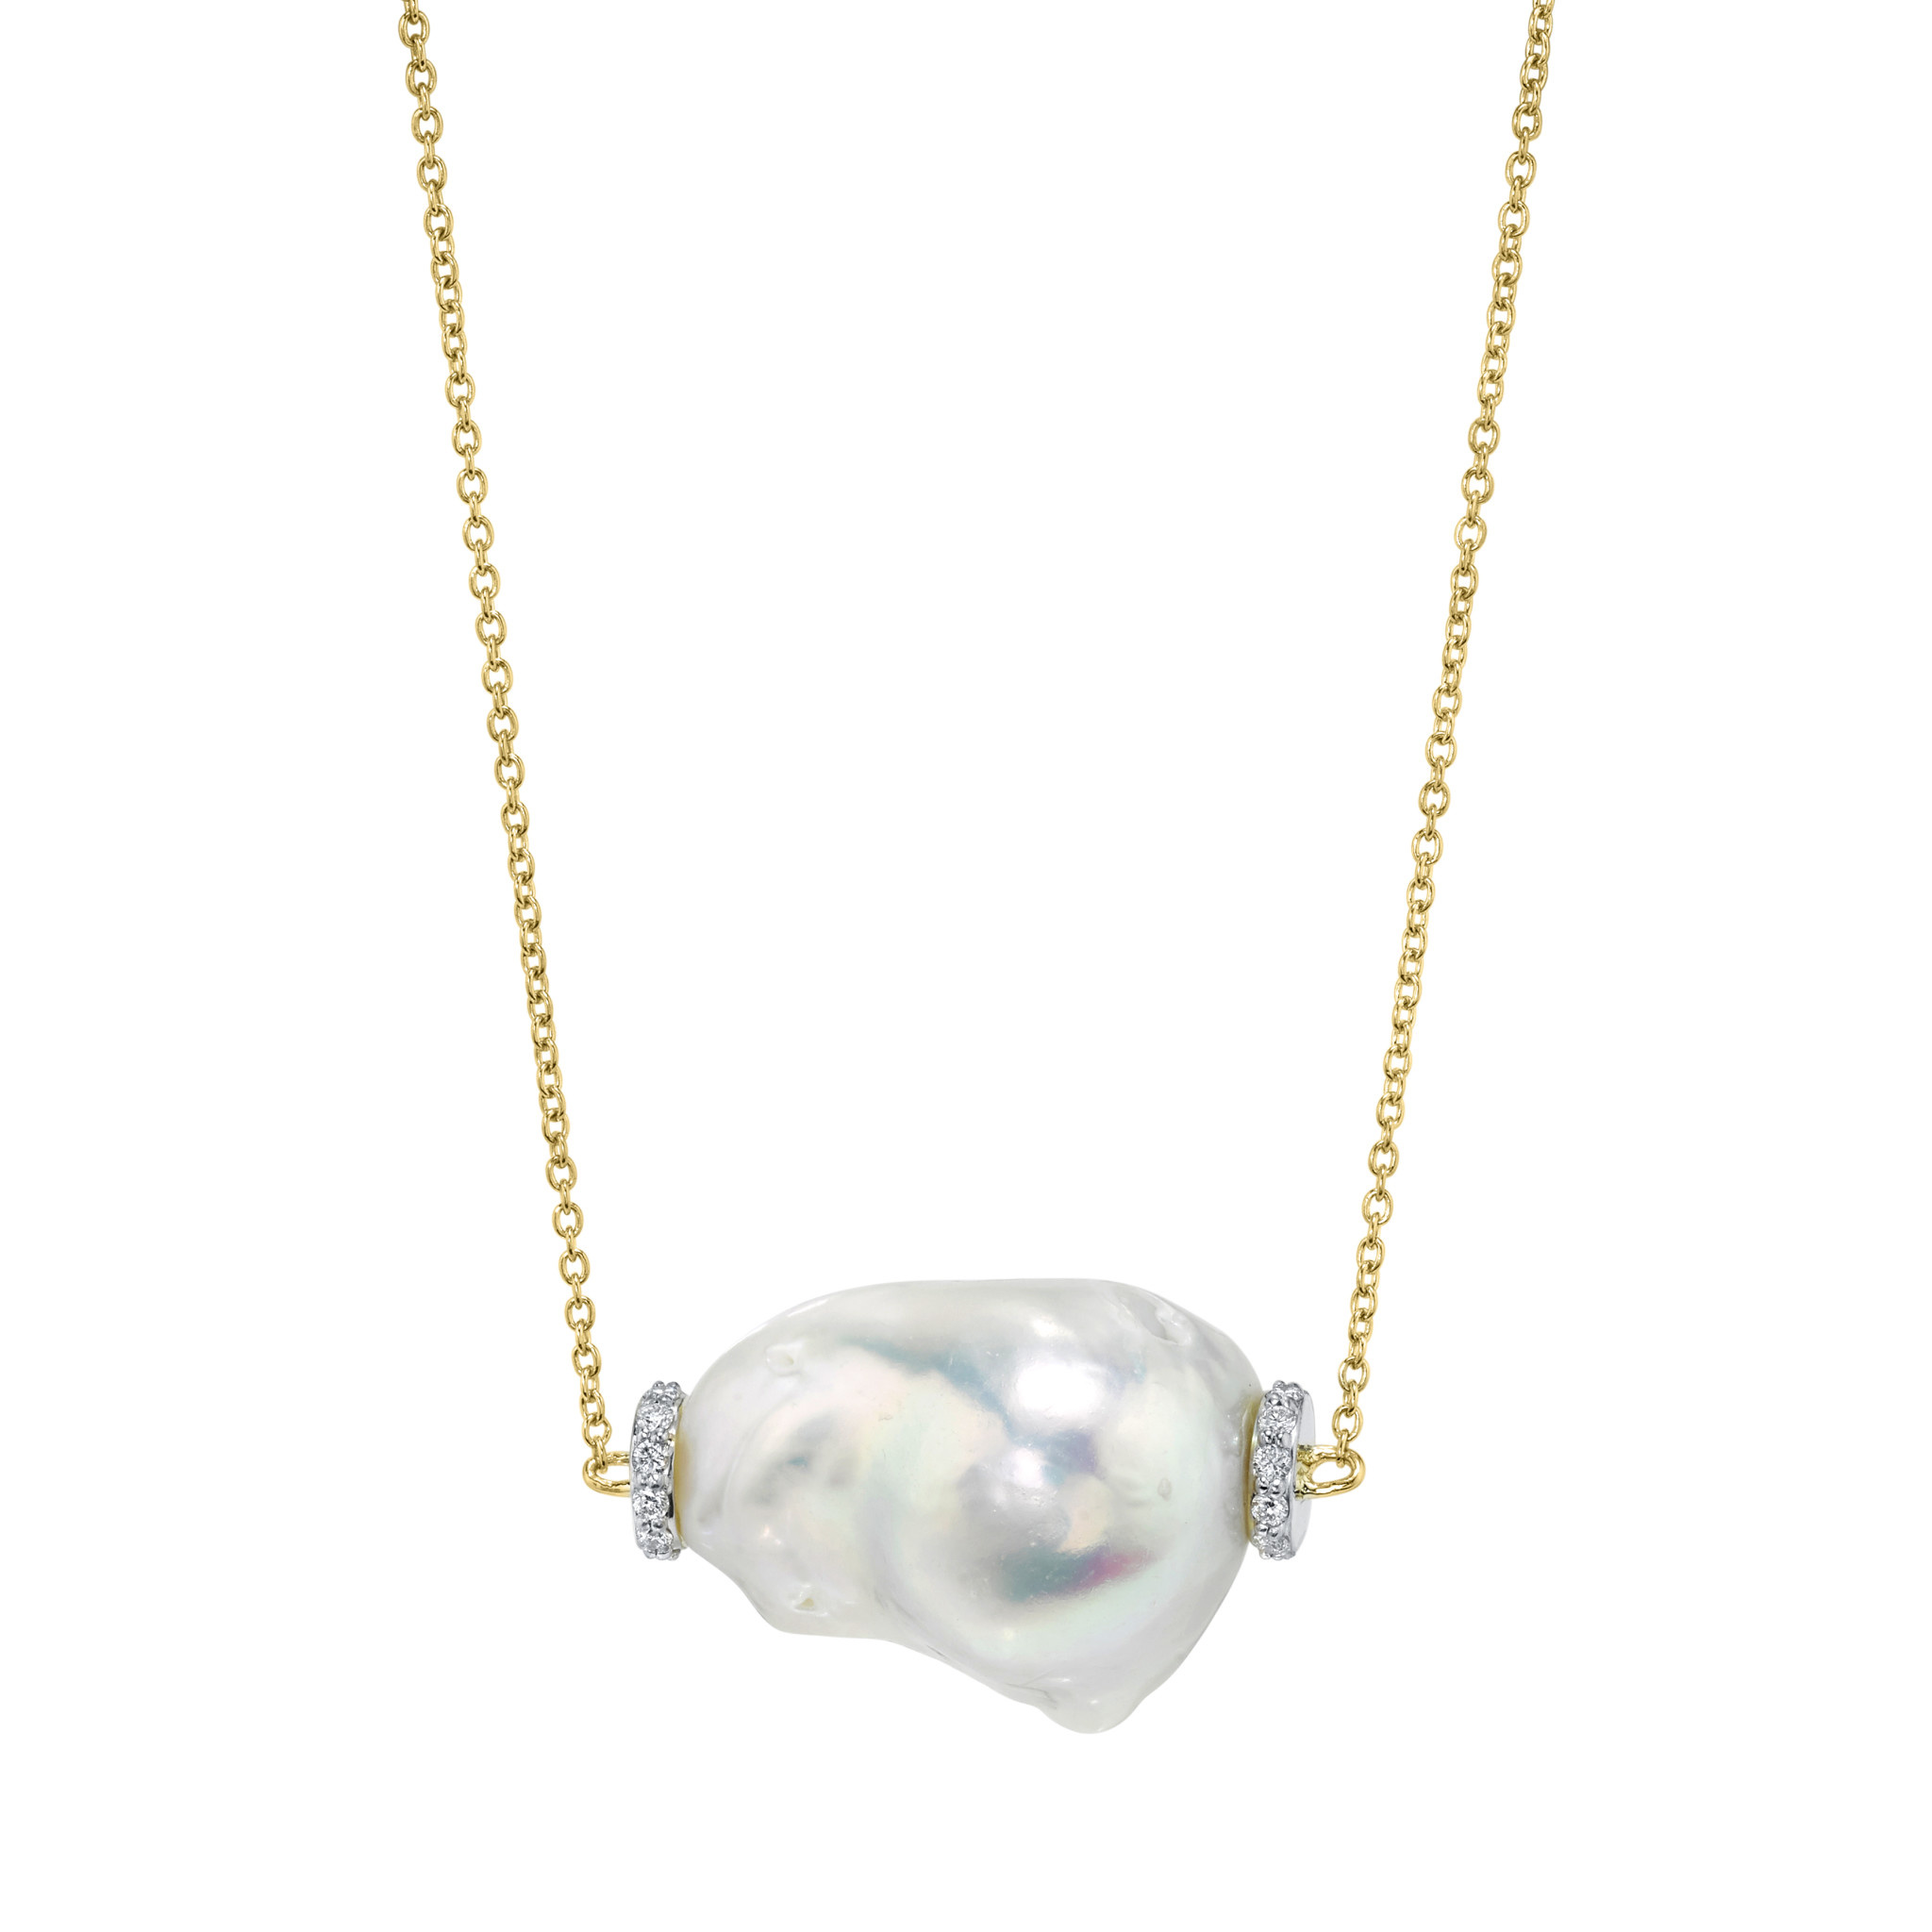 Baroque Pearl Chain with Diamond Detail 18K Yellow Gold